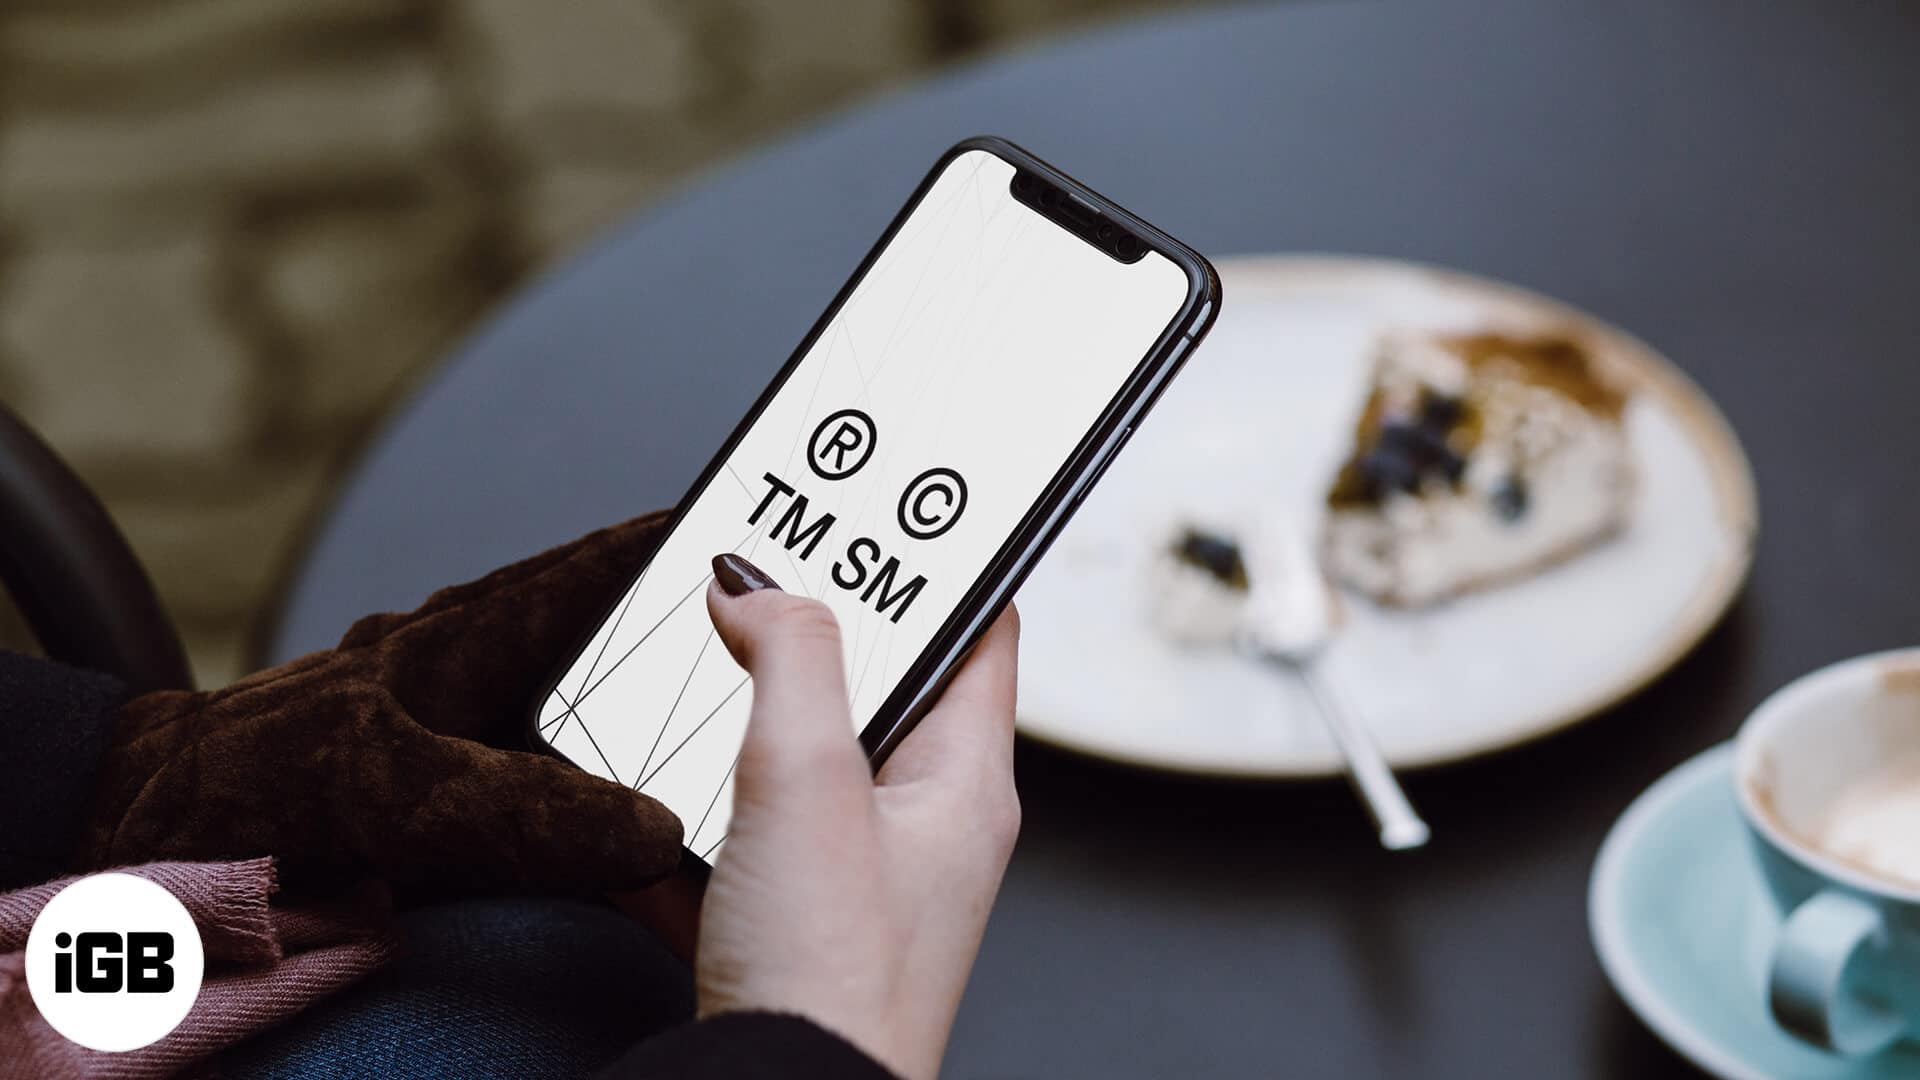 How to type trademark, copyright, registered symbols on iPhone and iPad